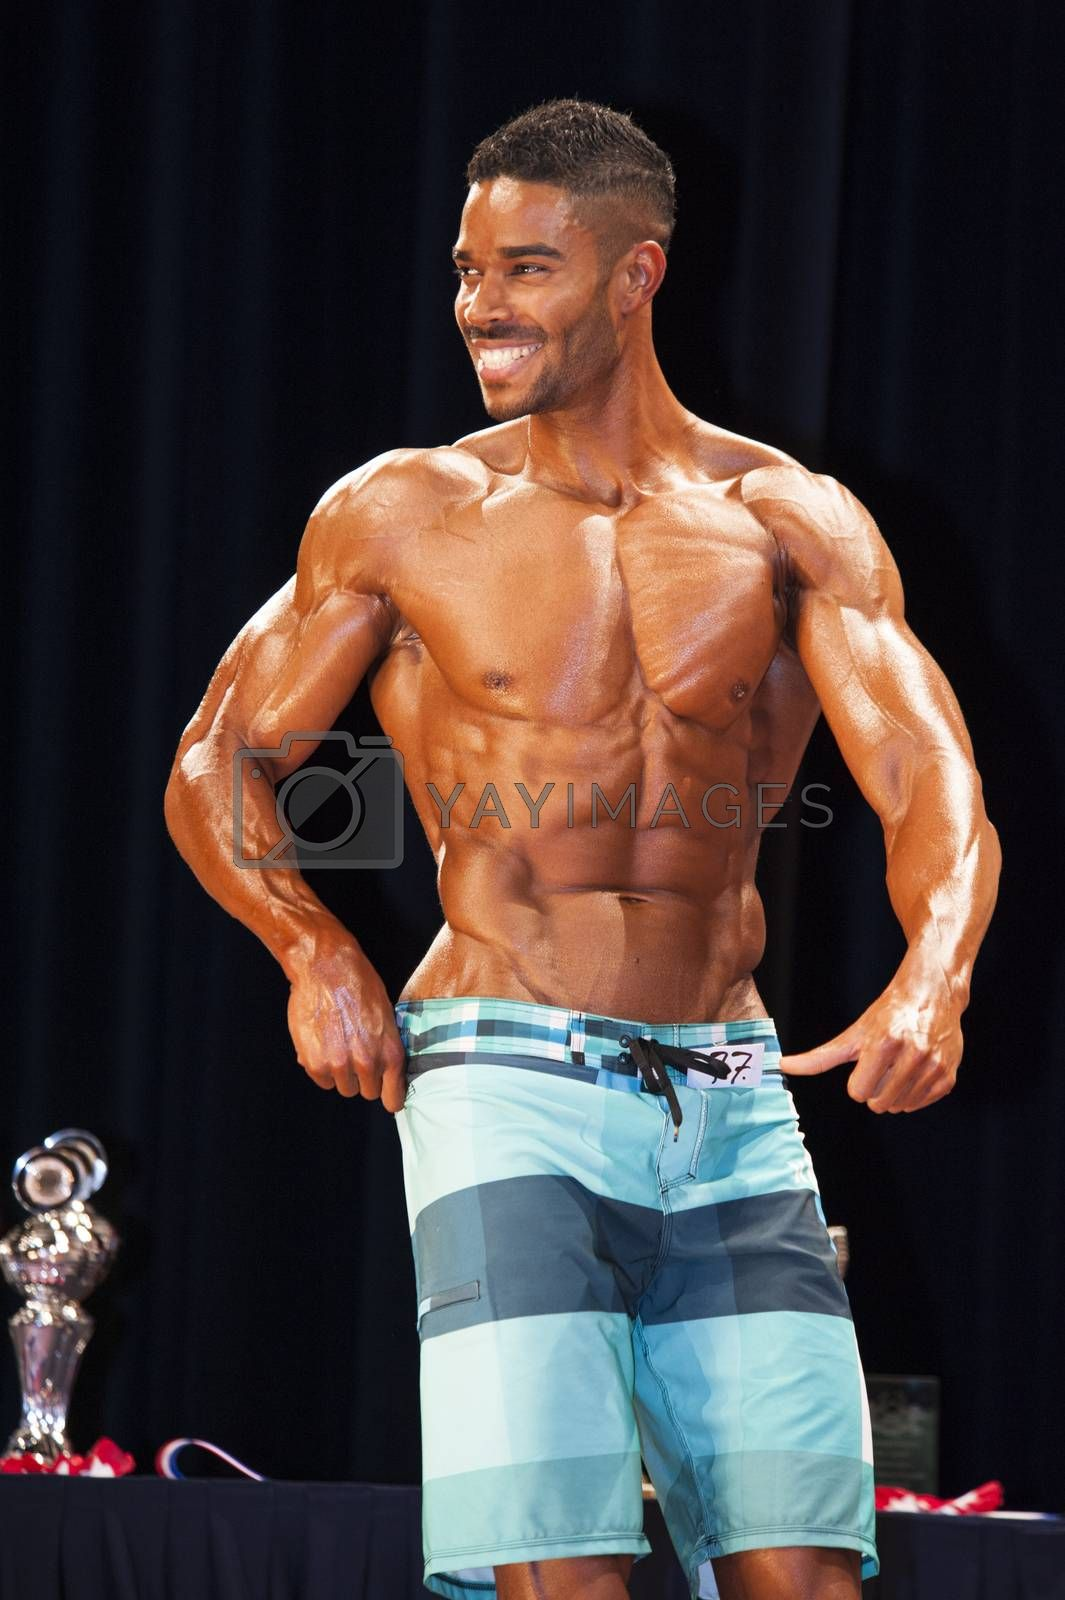 Fitness contestant shows his best chest pose on stage by yellowpaul